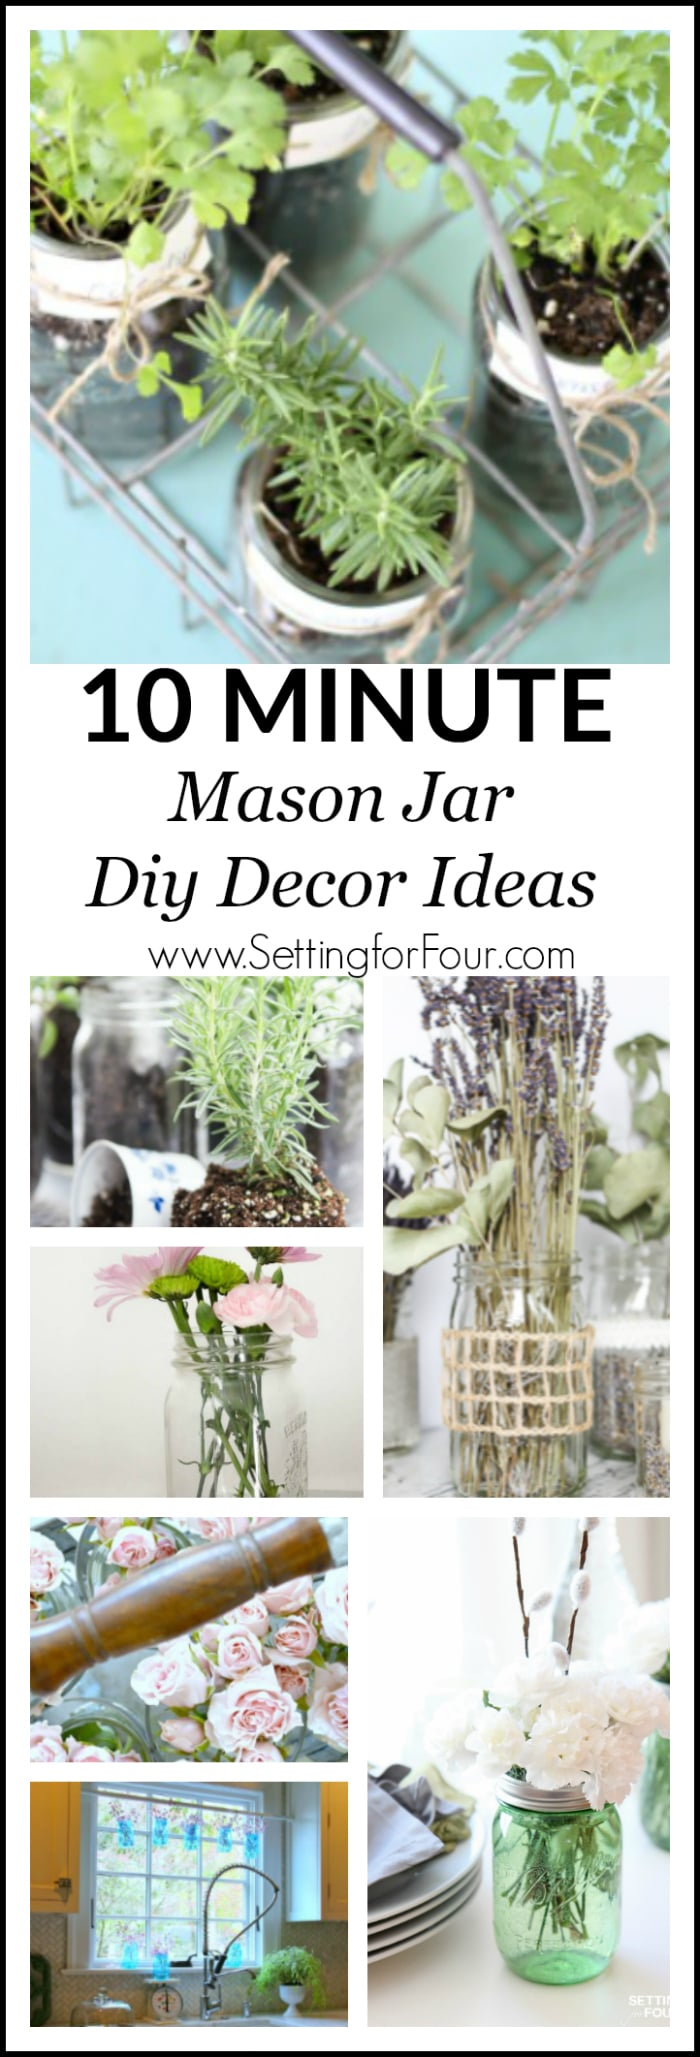 Learn how to make quick and easy 10 minute table centerpieces, baskets and hanging displays with herbs and flowers using new and vintage mason jars! These gorgeous mason jar decor ideas are perfect for wedding and bridal showers, Mother's Day gifts, Mother's Day brunch table centerpieces and hostess gifts!